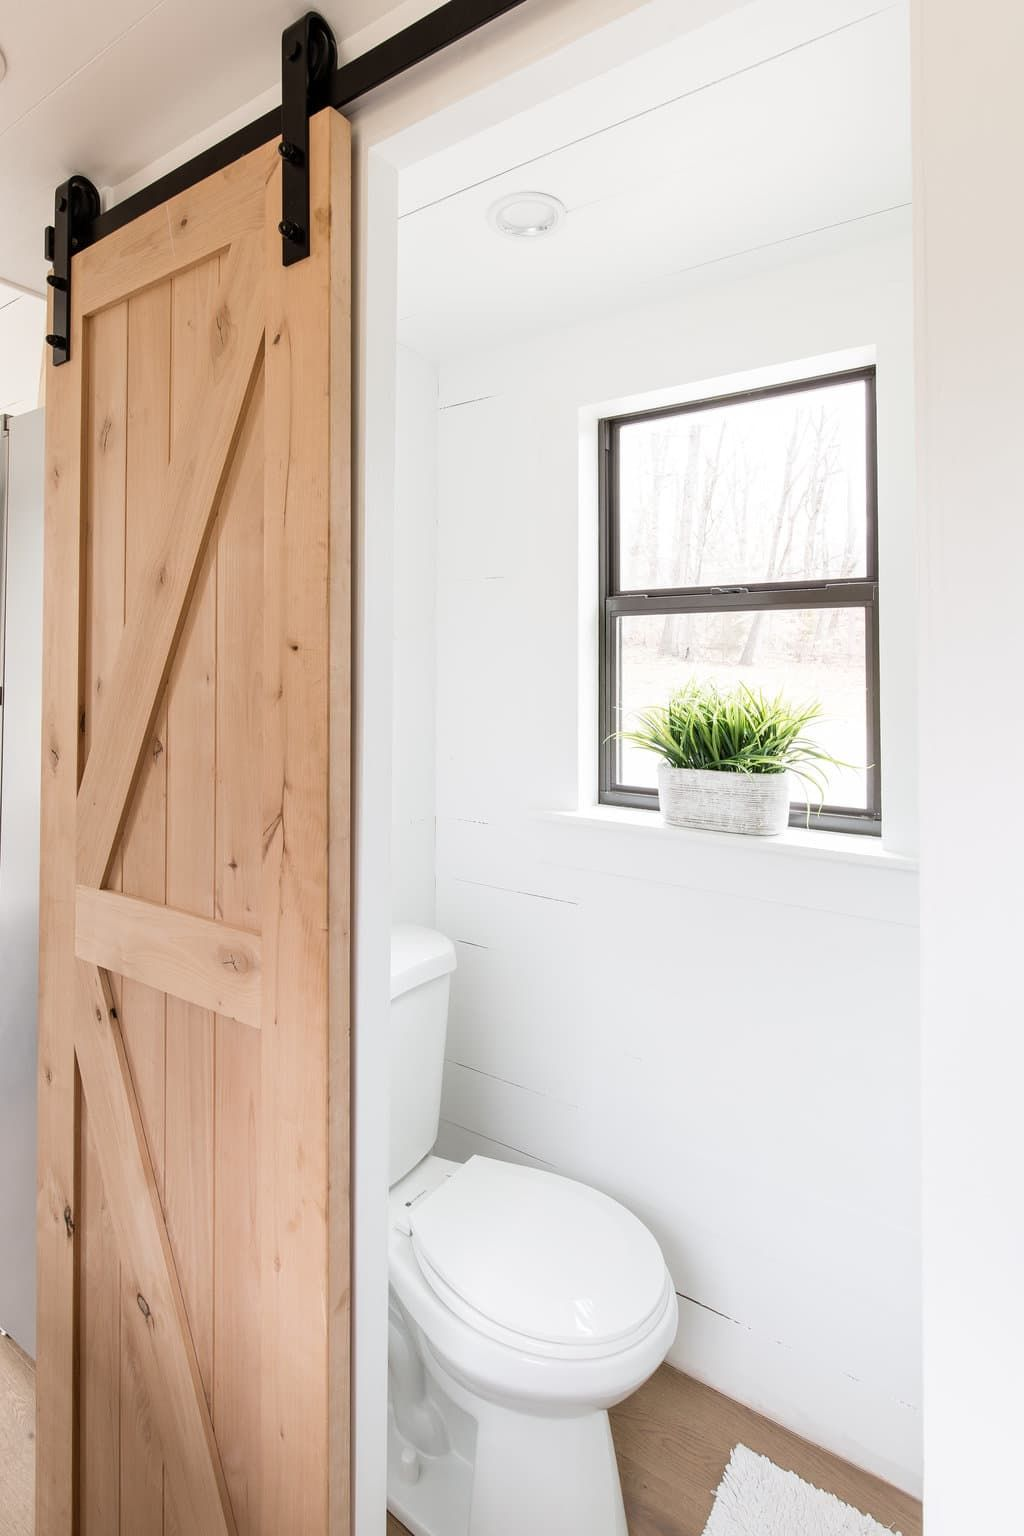 5 Brilliant Small Space Solutions Inspired by Tiny Homes | Small ...